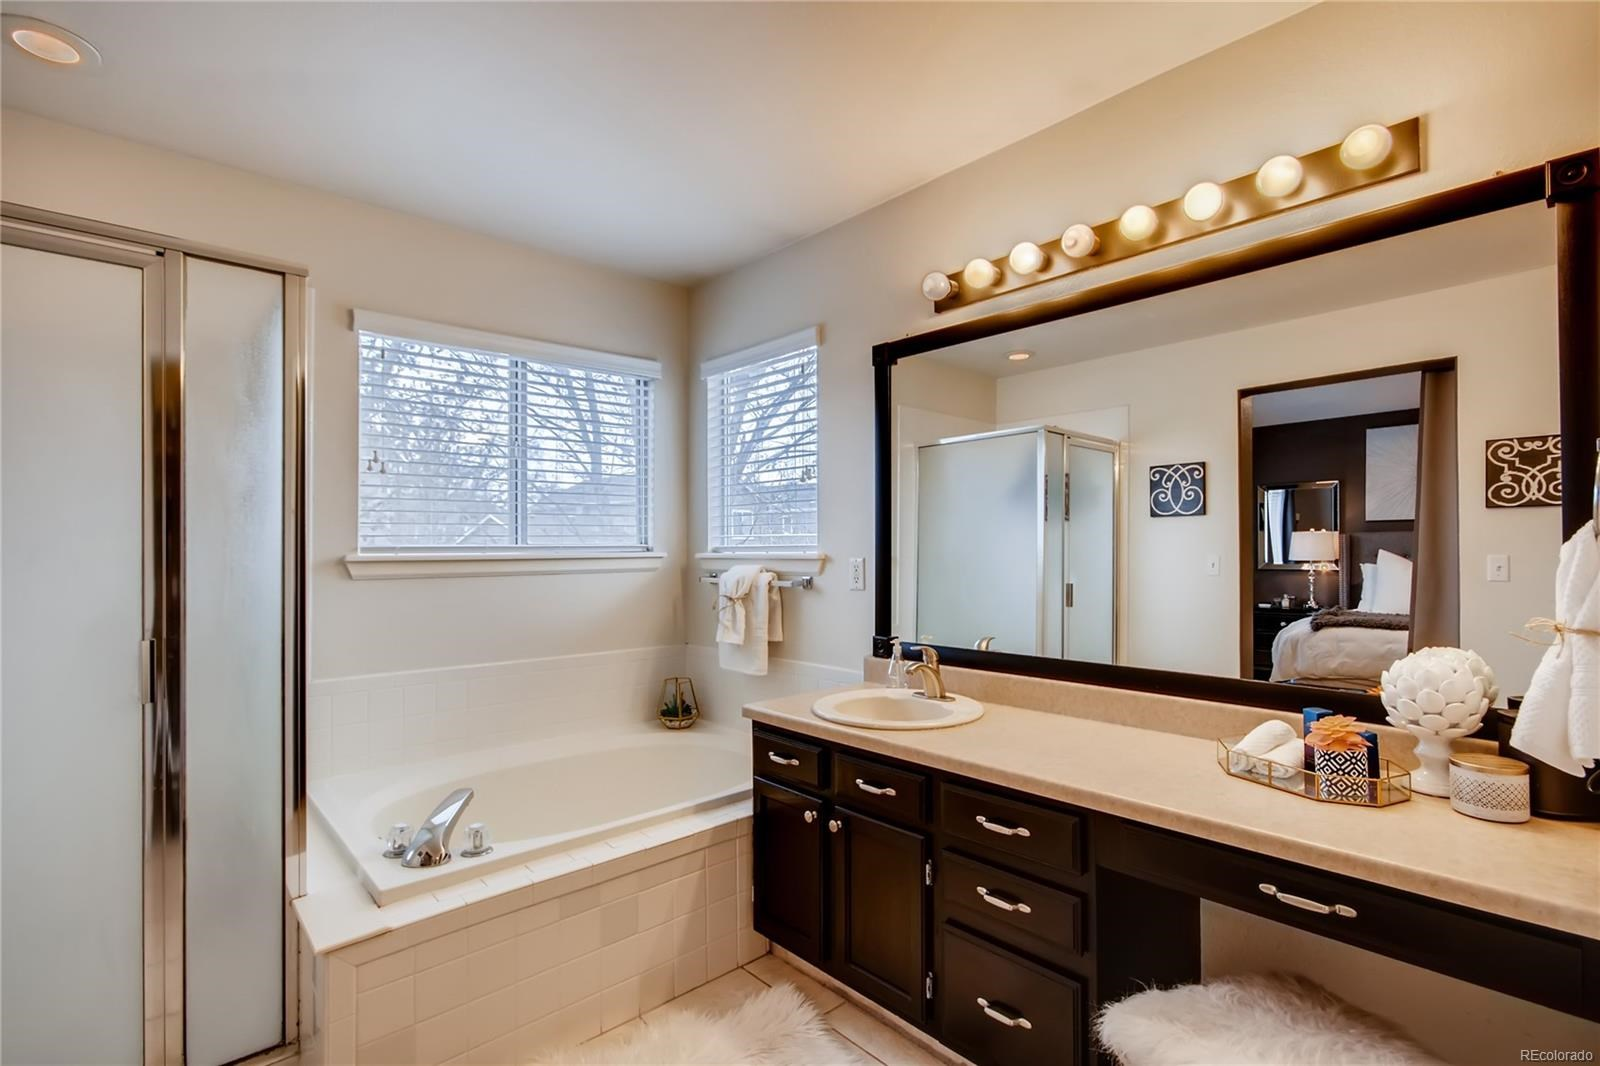 MLS# 8484969 - 23 - 2152 Gold Dust Trail, Highlands Ranch, CO 80129